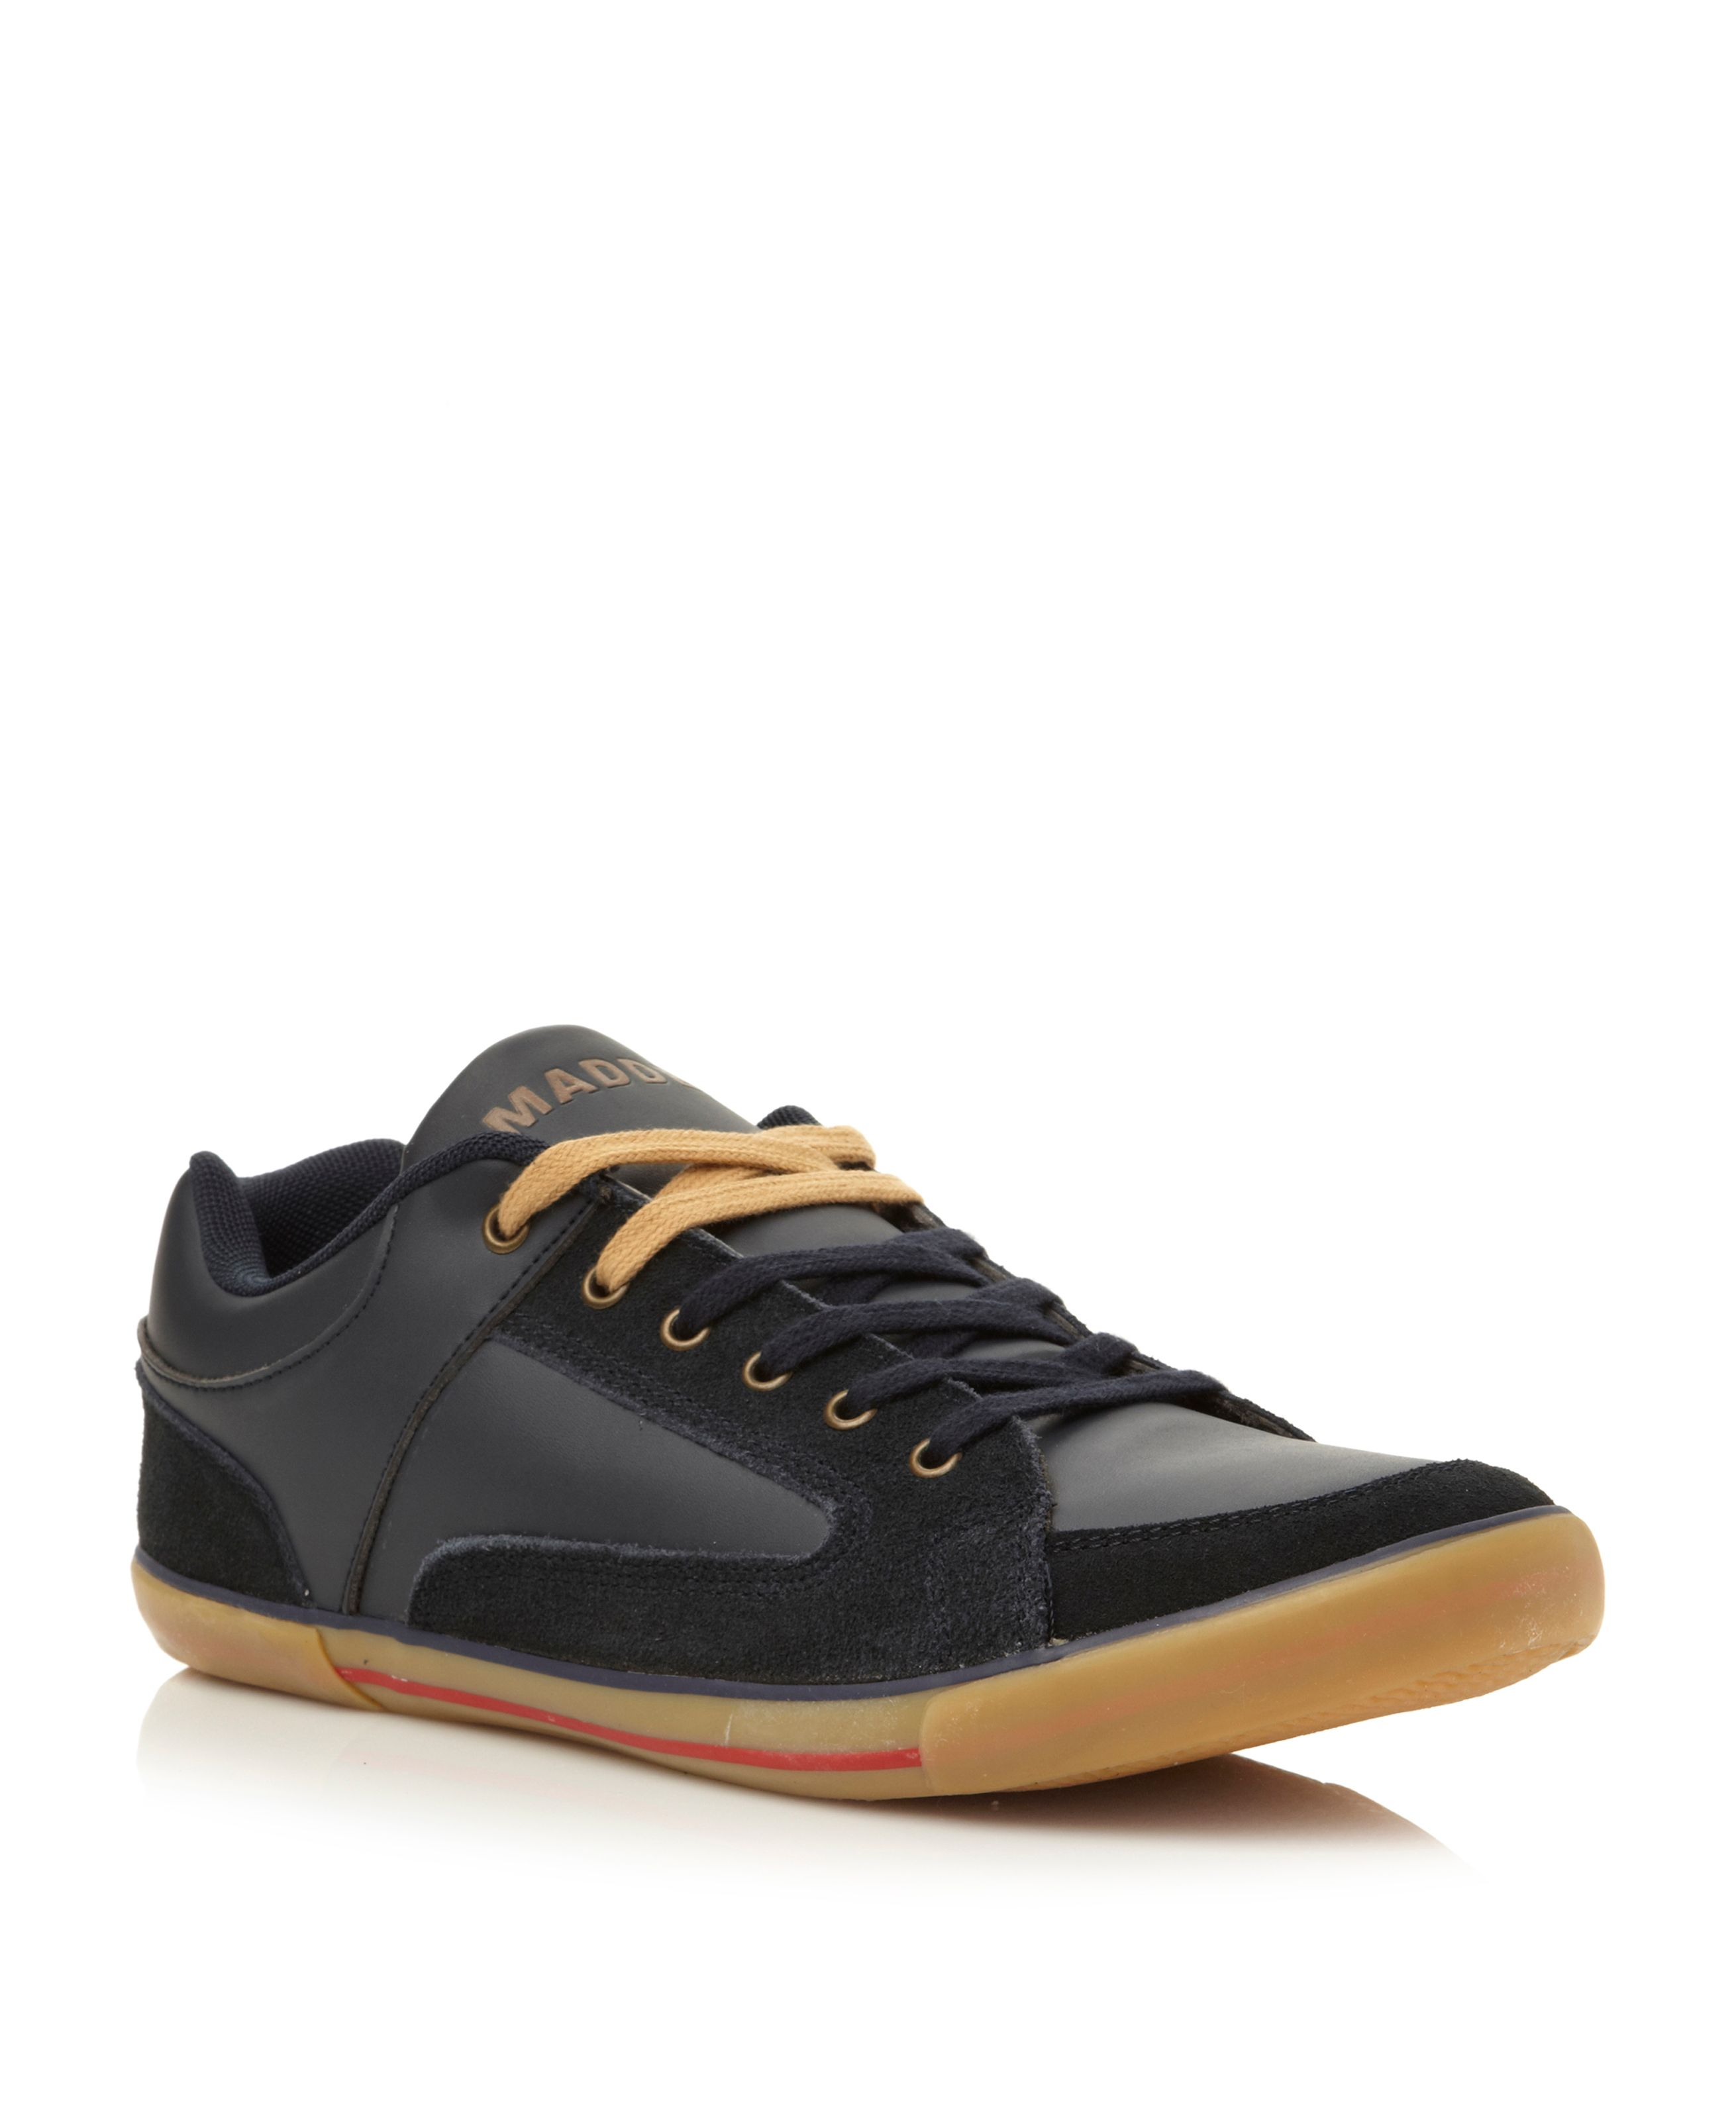 M-court lace up tennis style sneakers